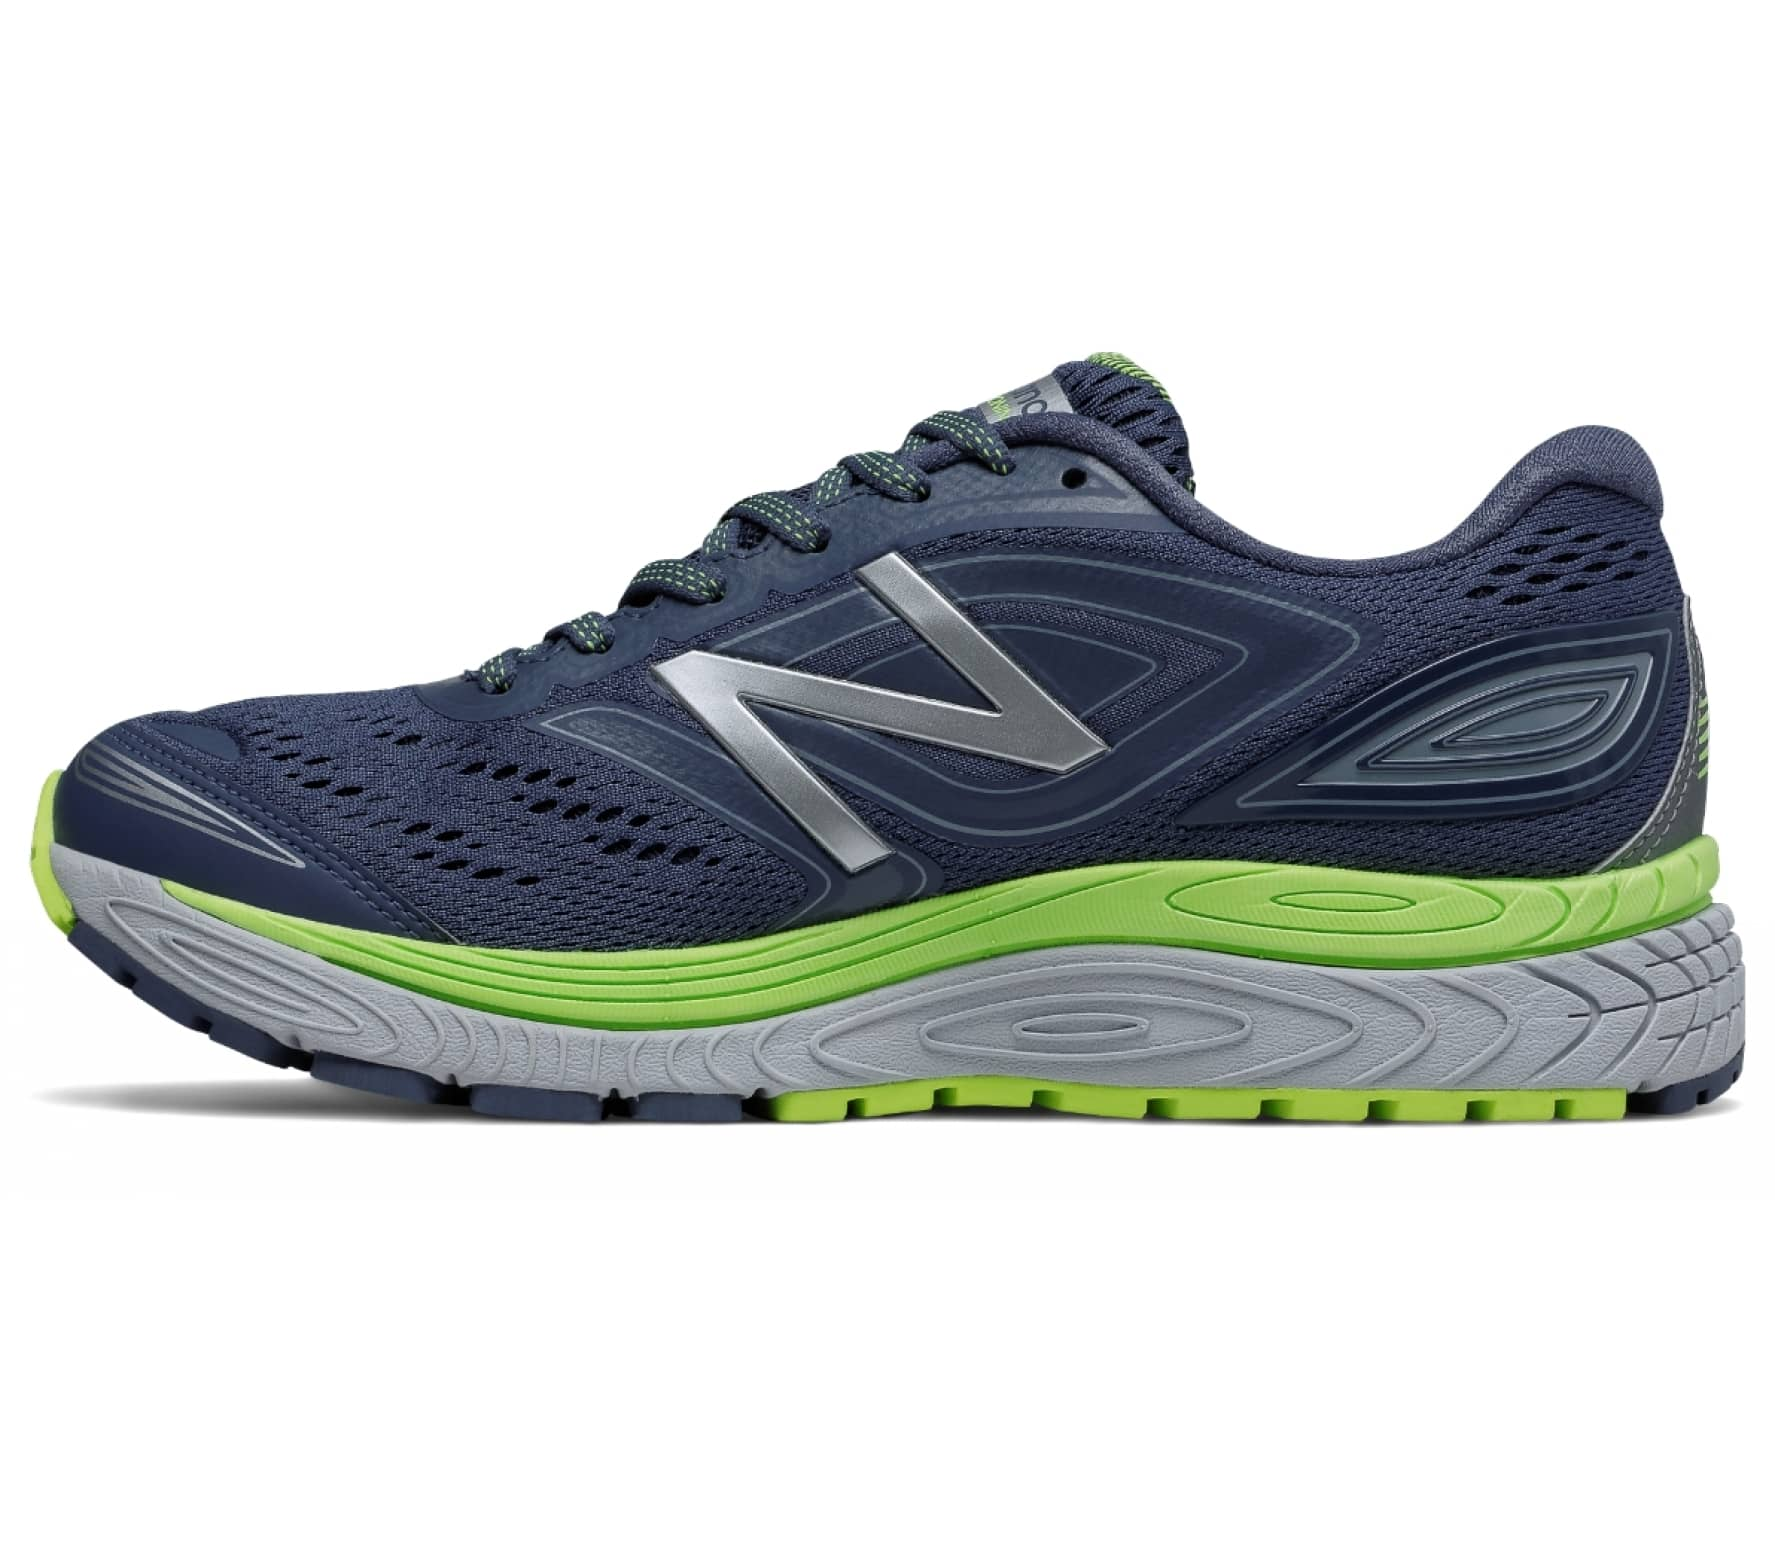 new balance 880 goretex